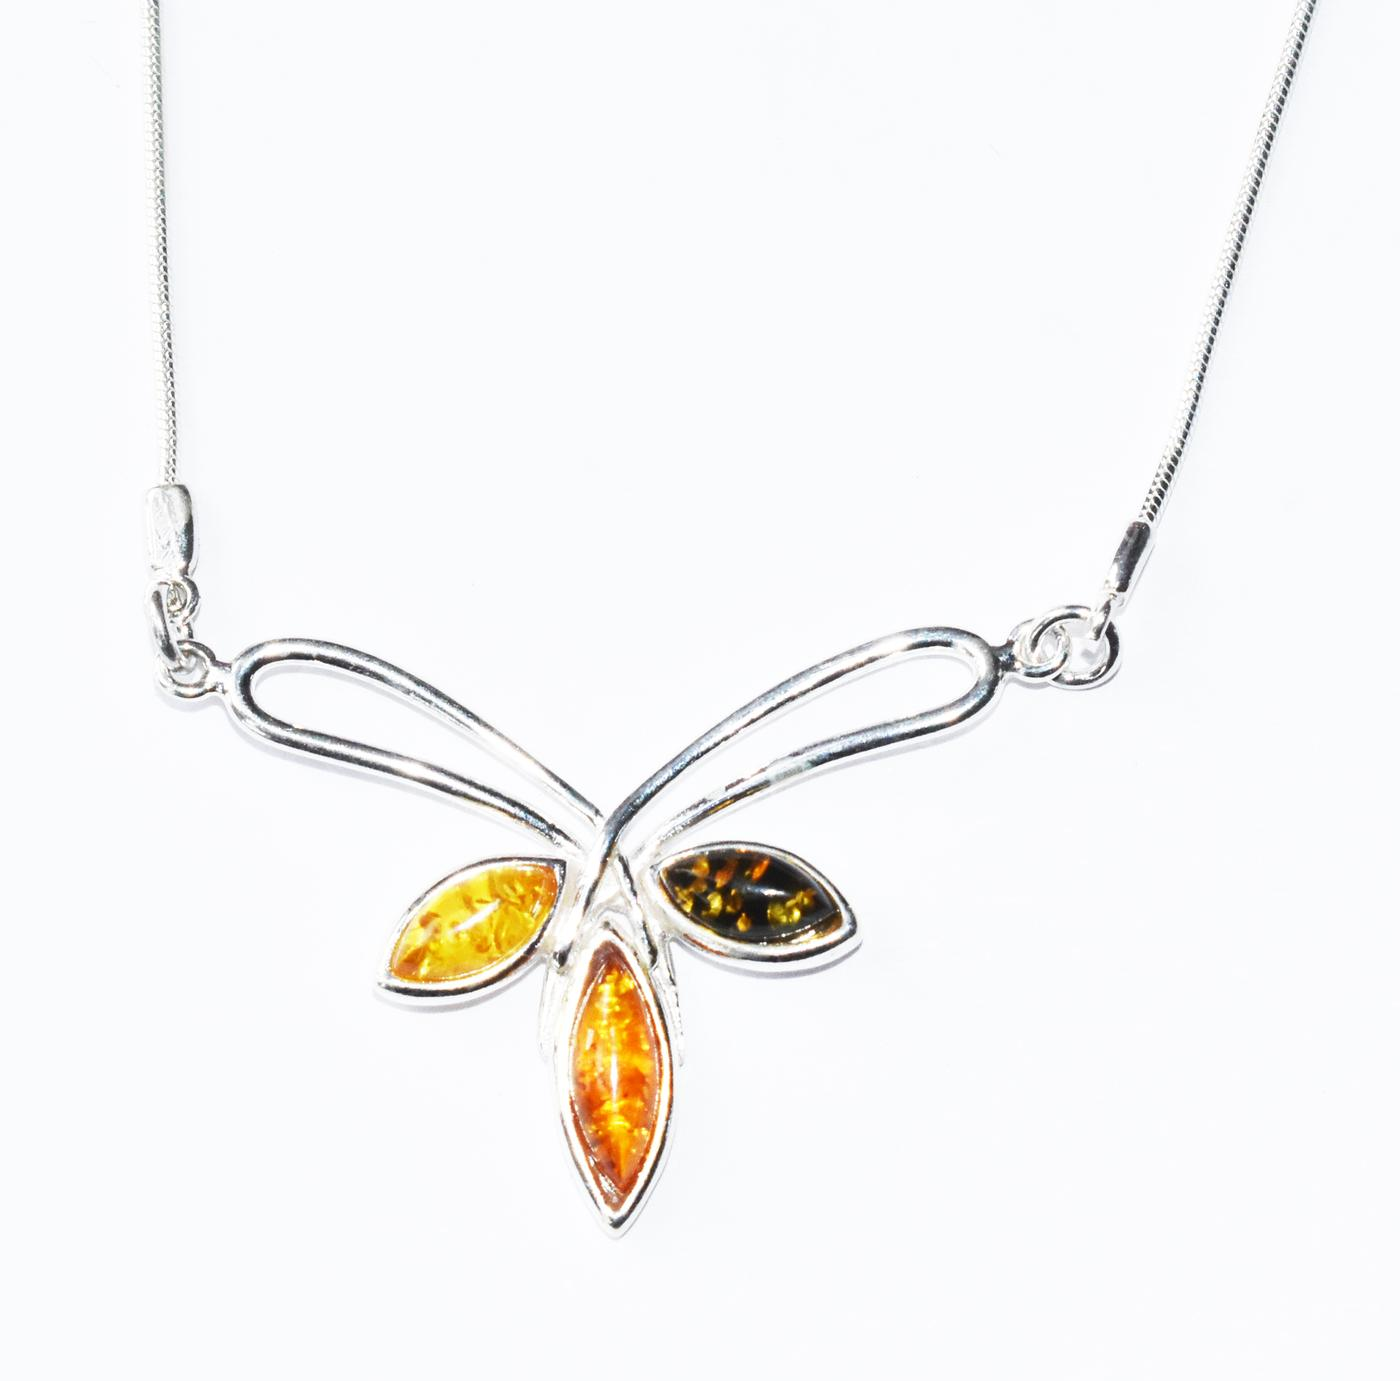 Tricolour Baltic amber necklace set in sterling silver. (N-05)